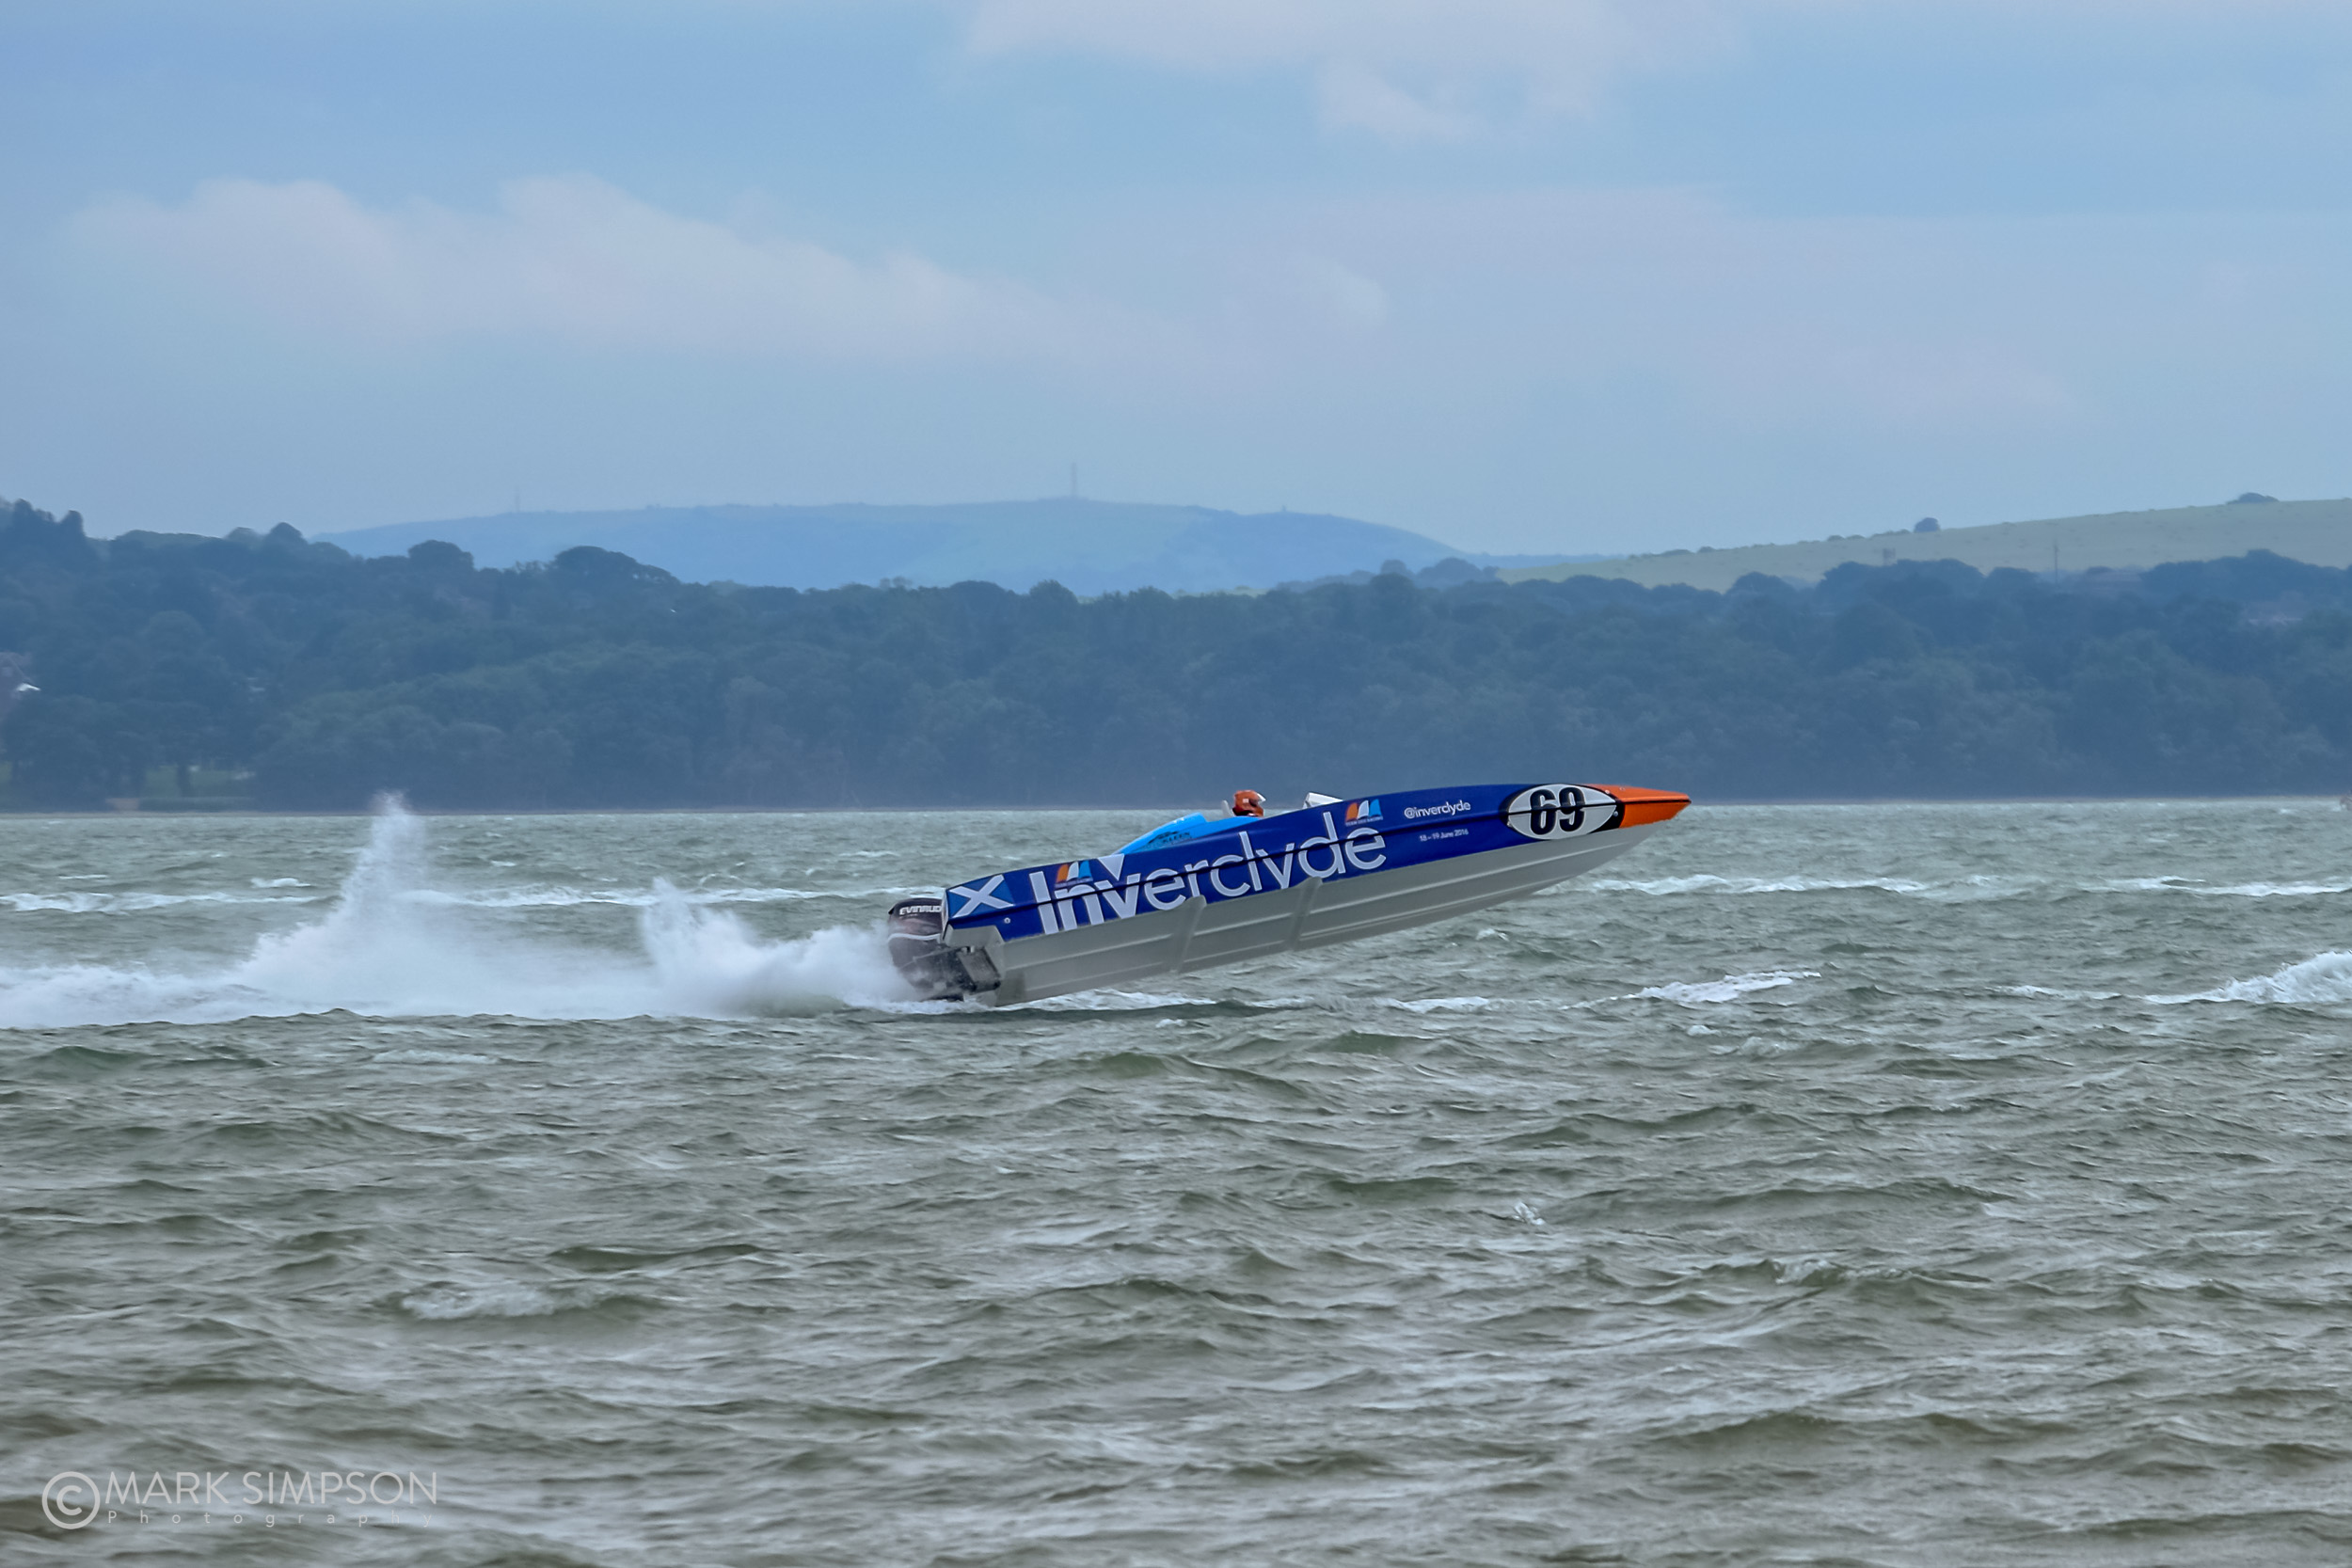 Grand Prix of the sea, Stokes Bay, Hampshire (Fujifilm X-T1, Fujinon XF 55-200mm F3.5-4.8 R LM OIS at 200mm, 1/1000 sec f7.1, ISO200)